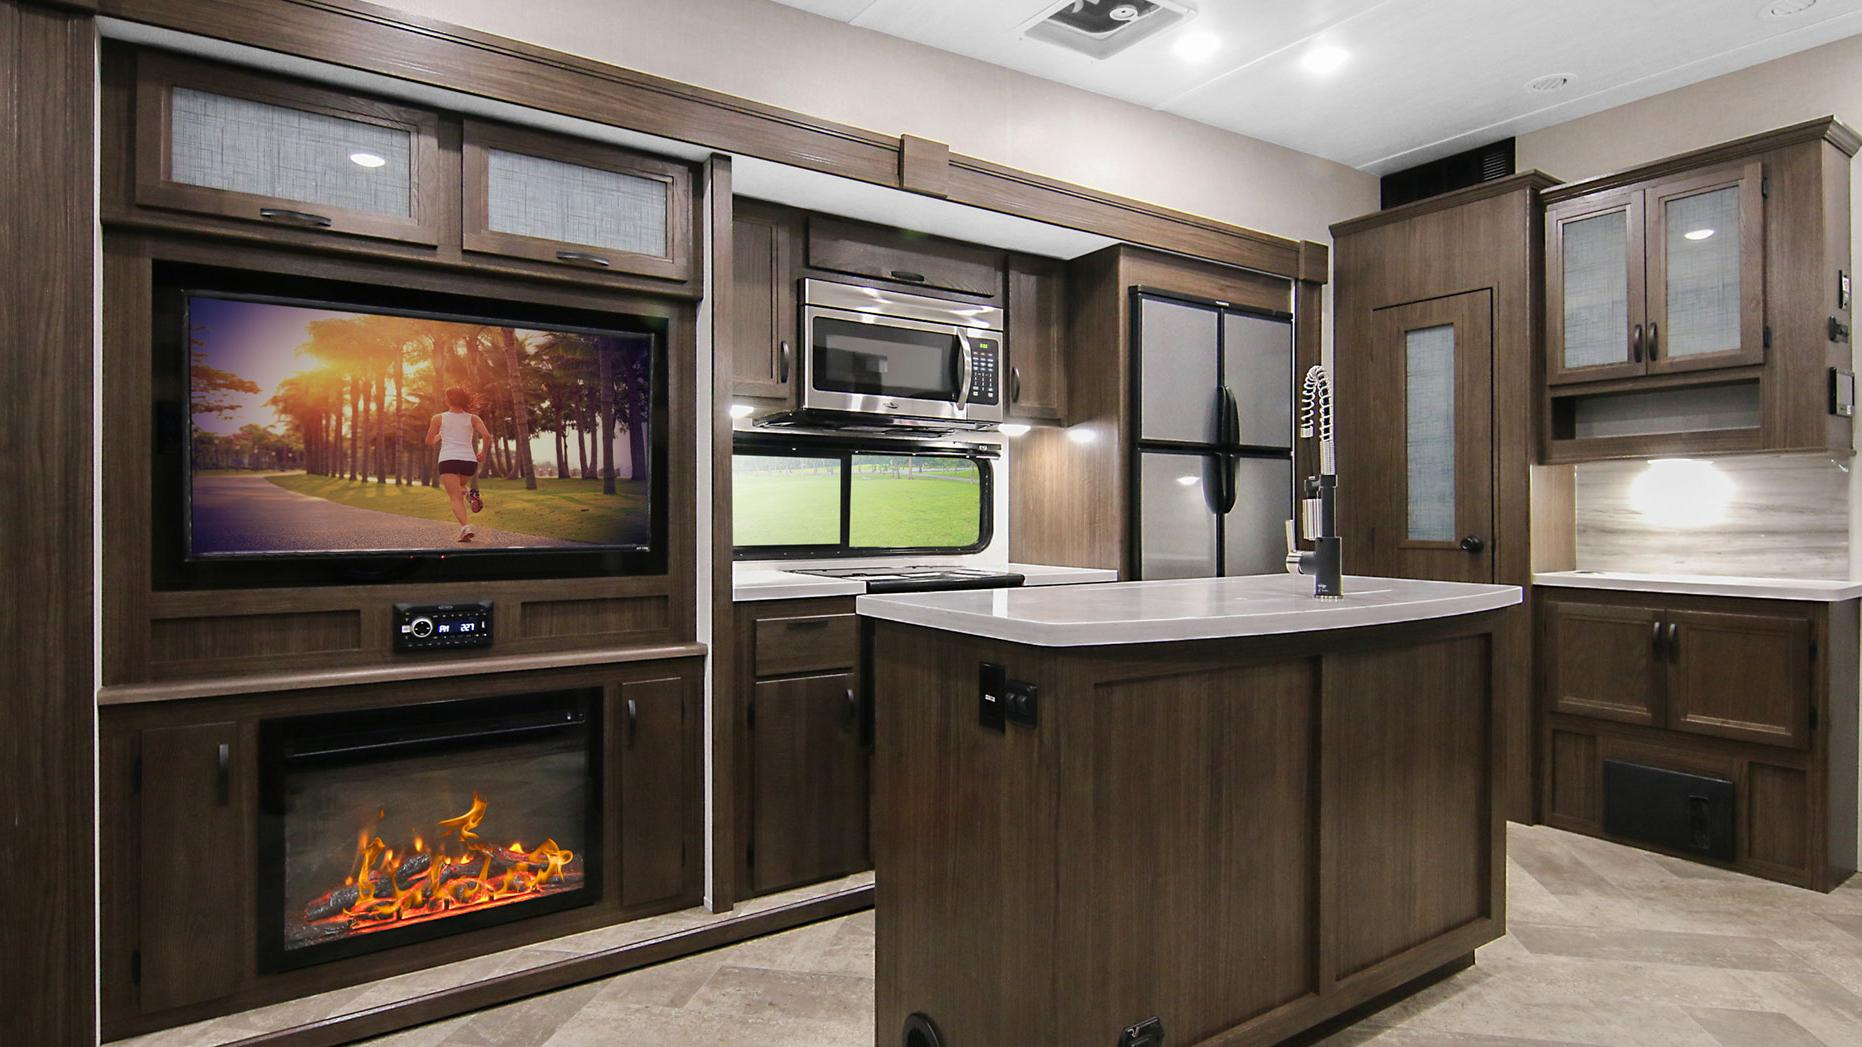 Voyage Fifth Wheel V3134RL Featuring Island, 12. cu. ft. Refrigerator, Pantry, Microwave, Entertainment Center